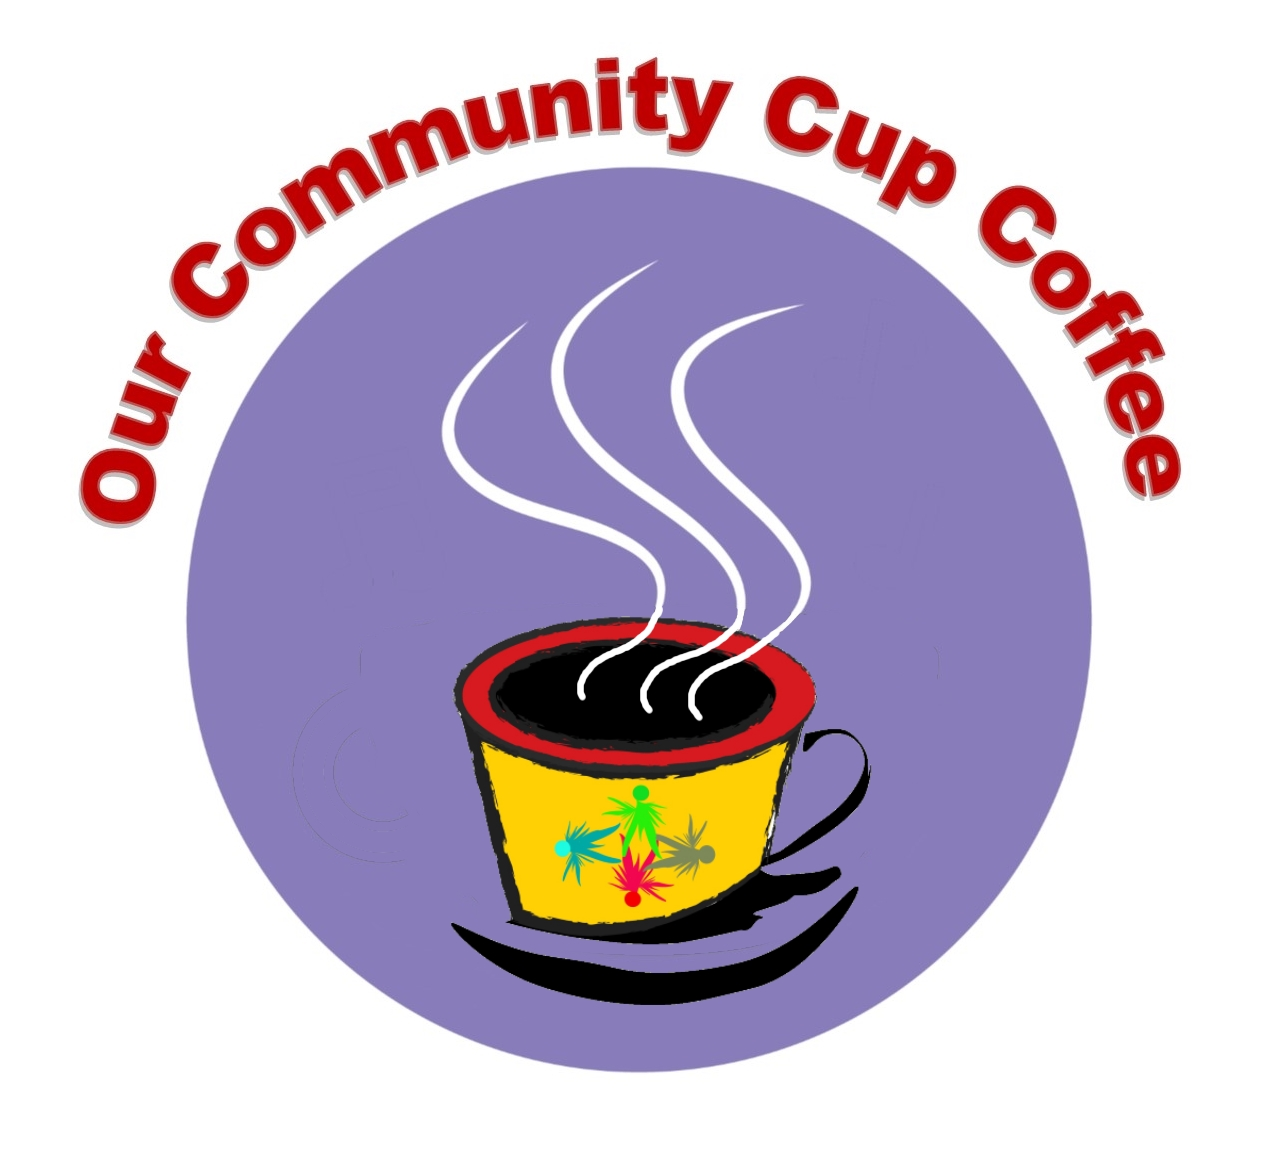 Our Community Cup Coffee